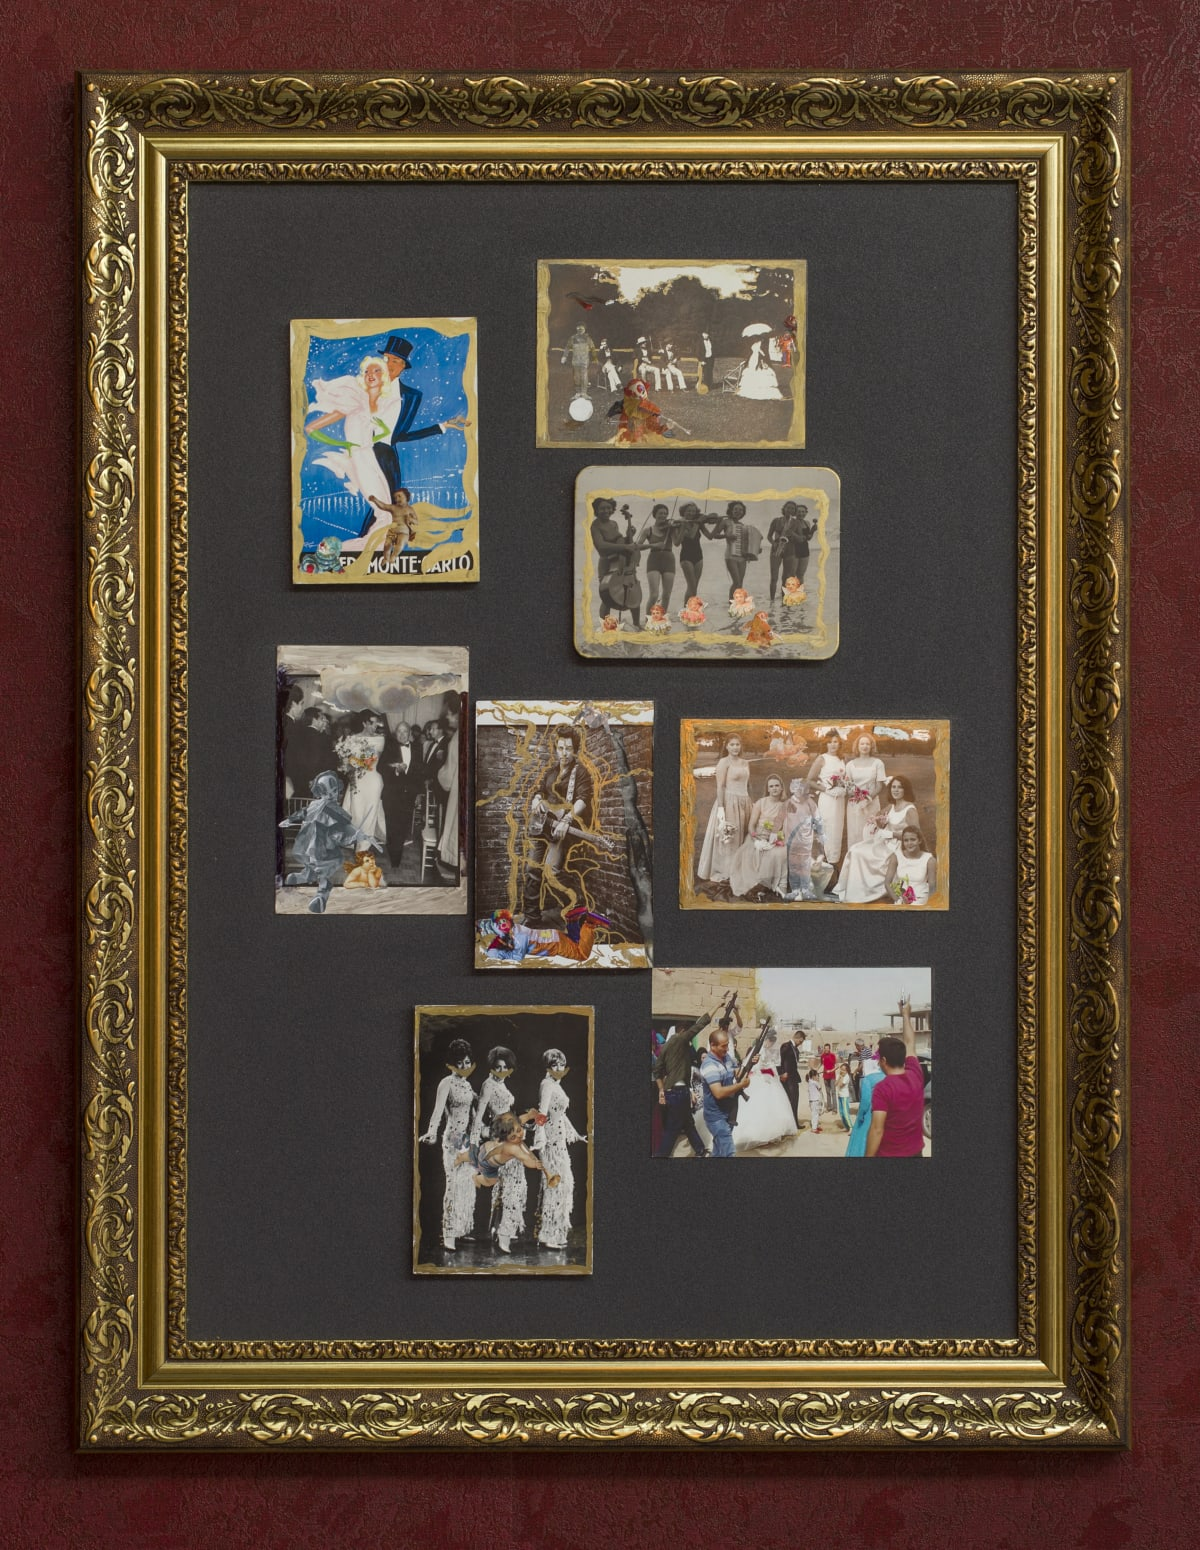 Wedding 2020 postcards and mixed media 78 x 60 cm